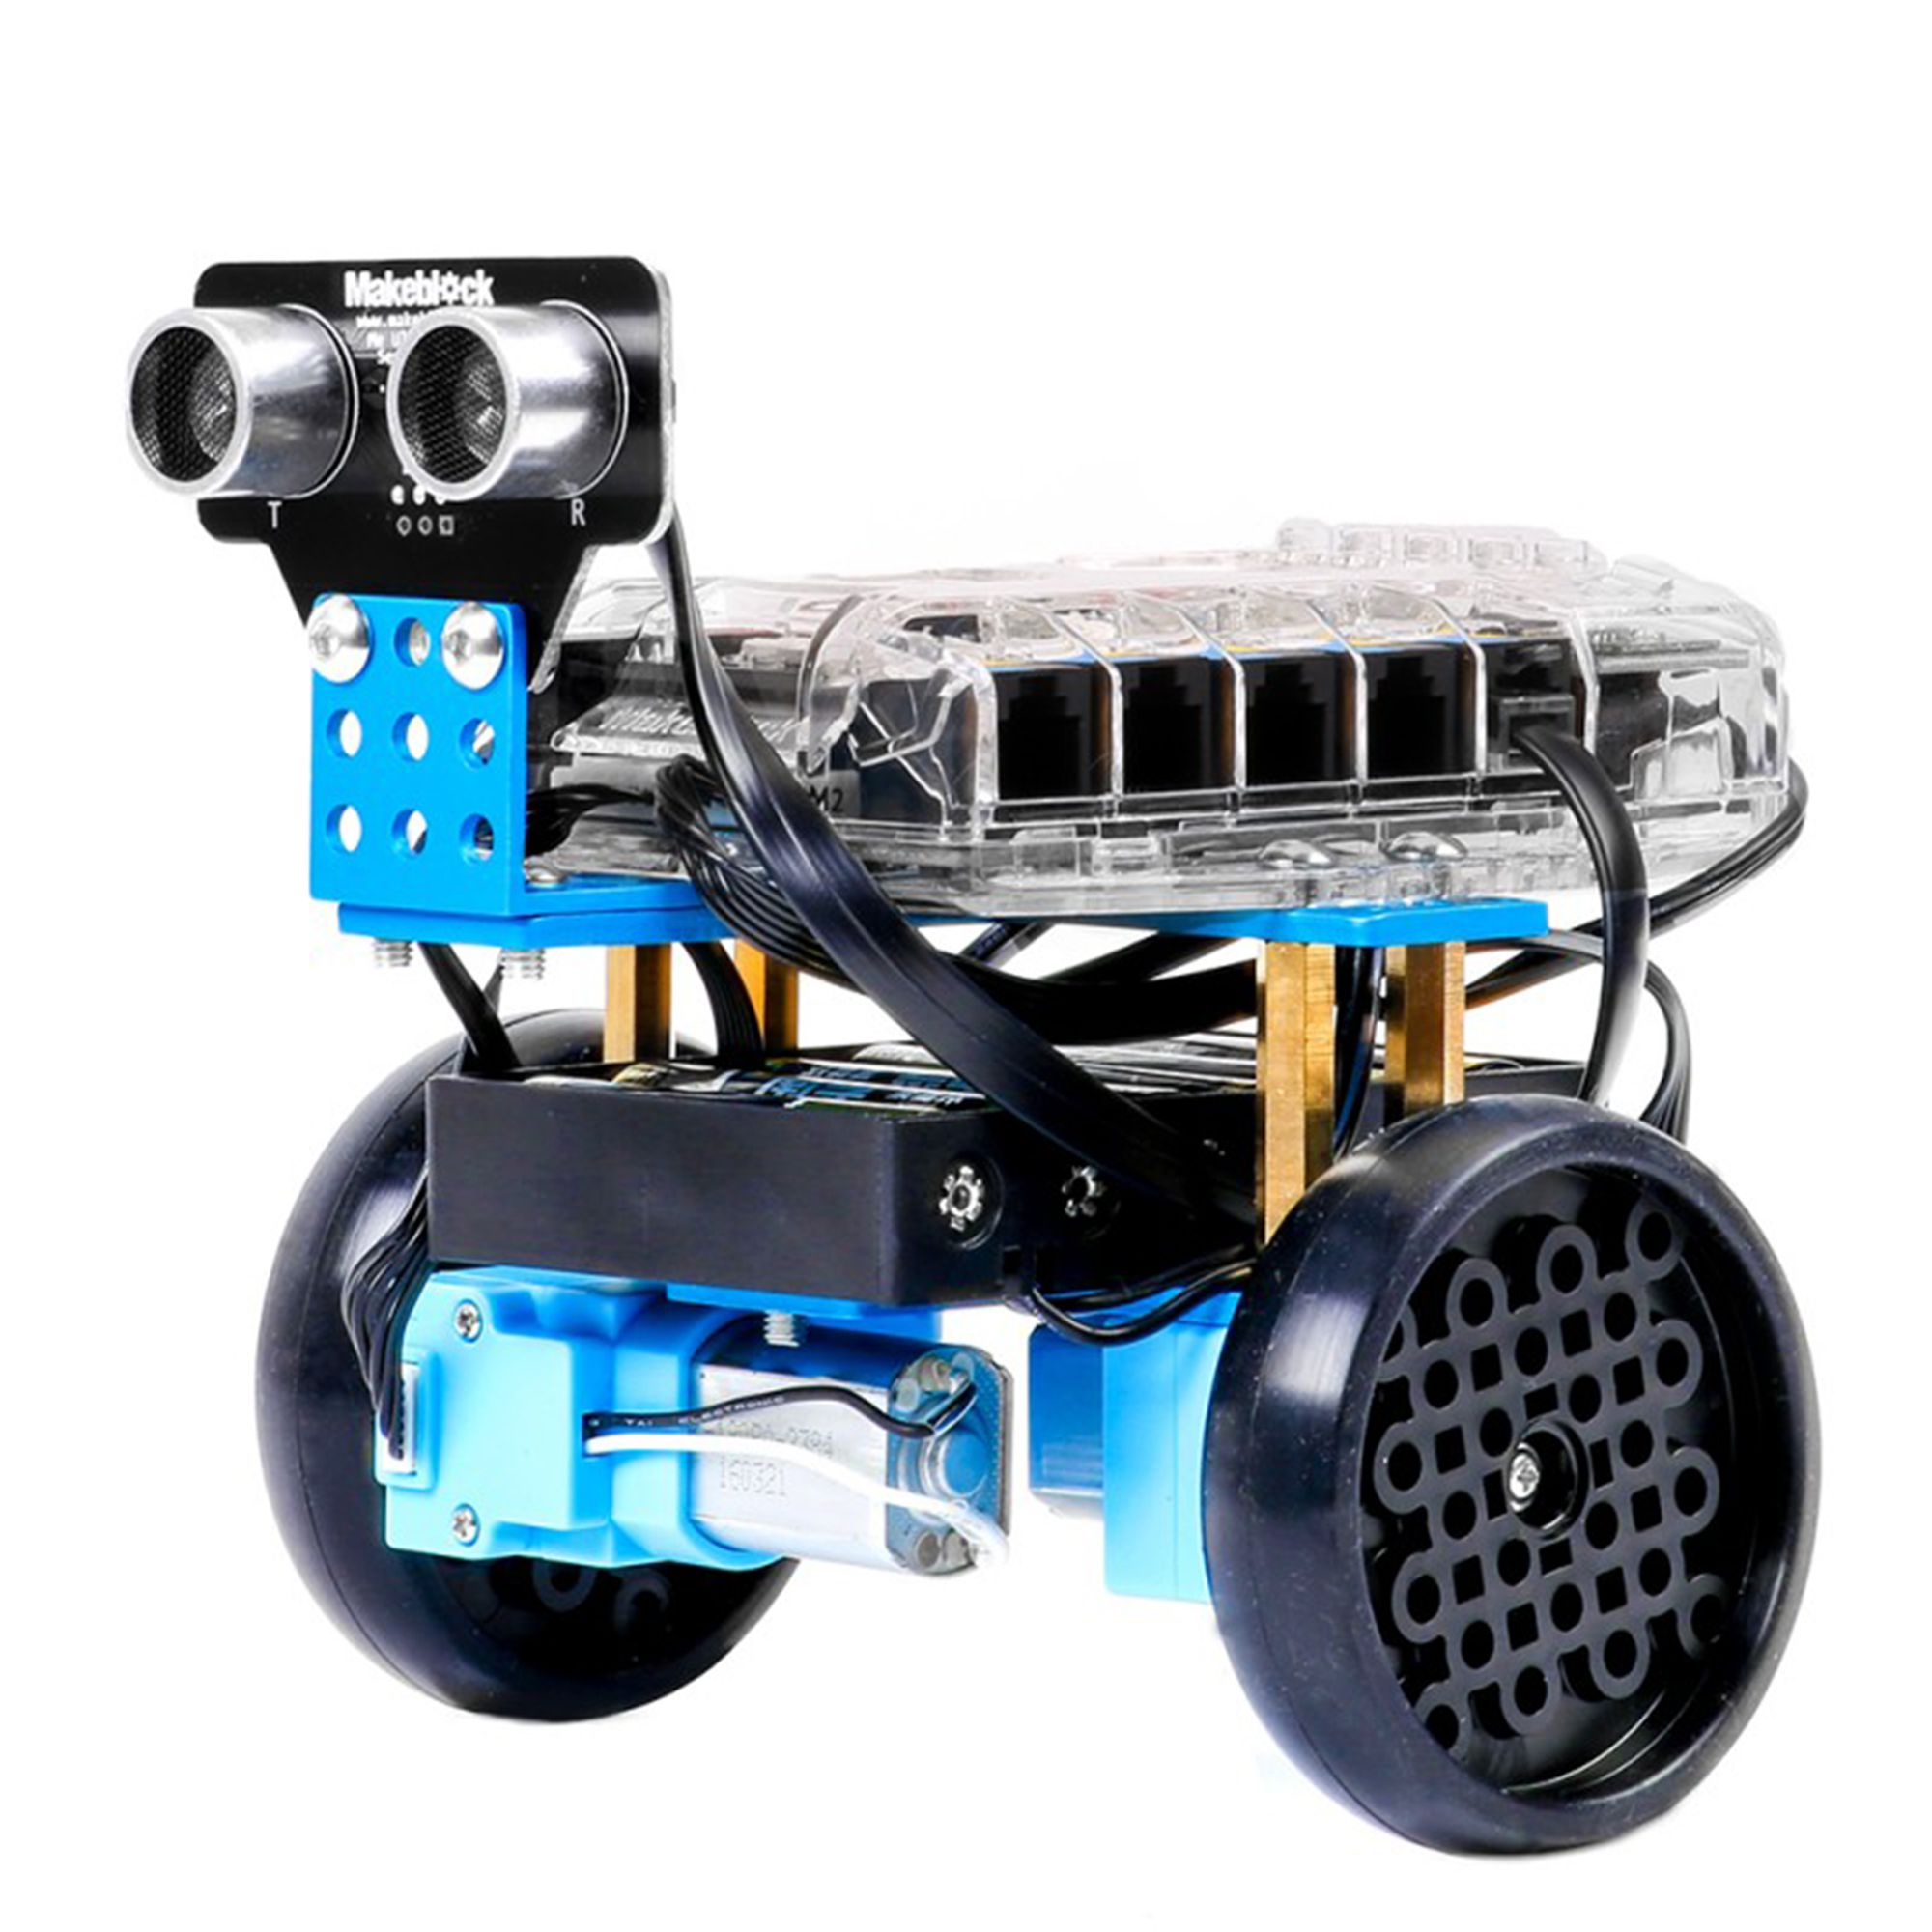 Top 5 Programmable Robot Kits for Kids